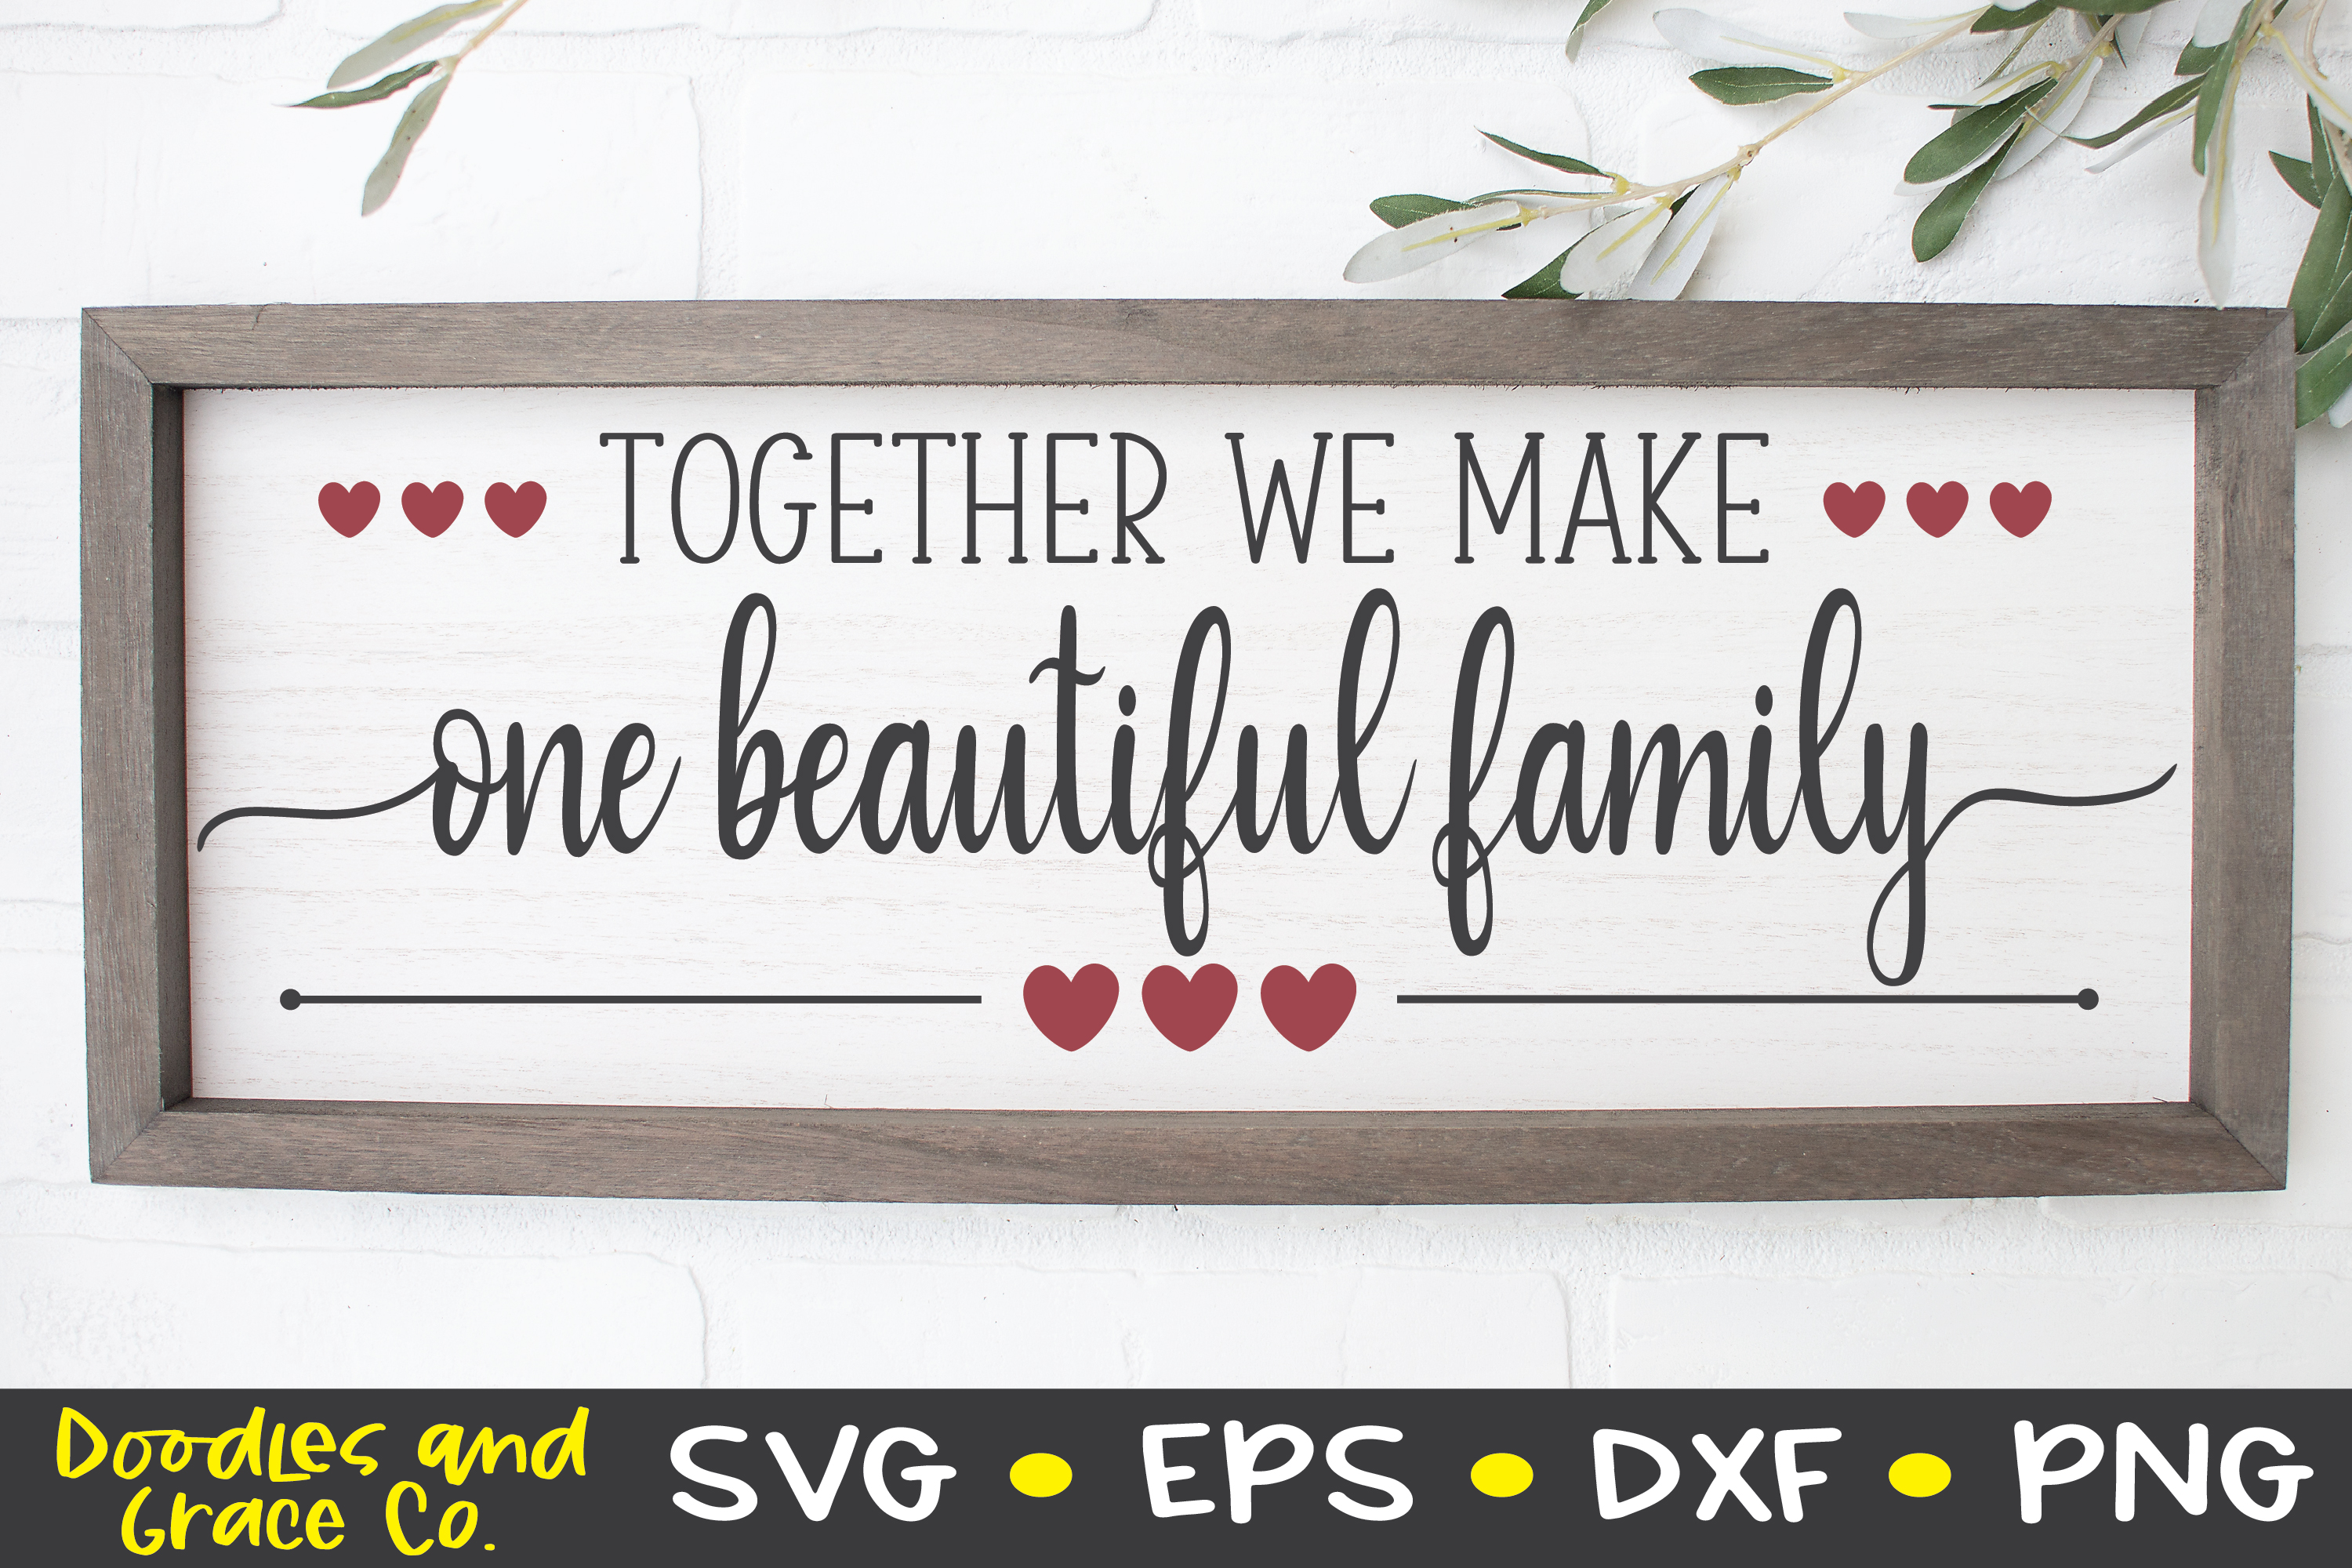 Together We Make One Beautiful Family - Family SVG - SVG - E example image 2